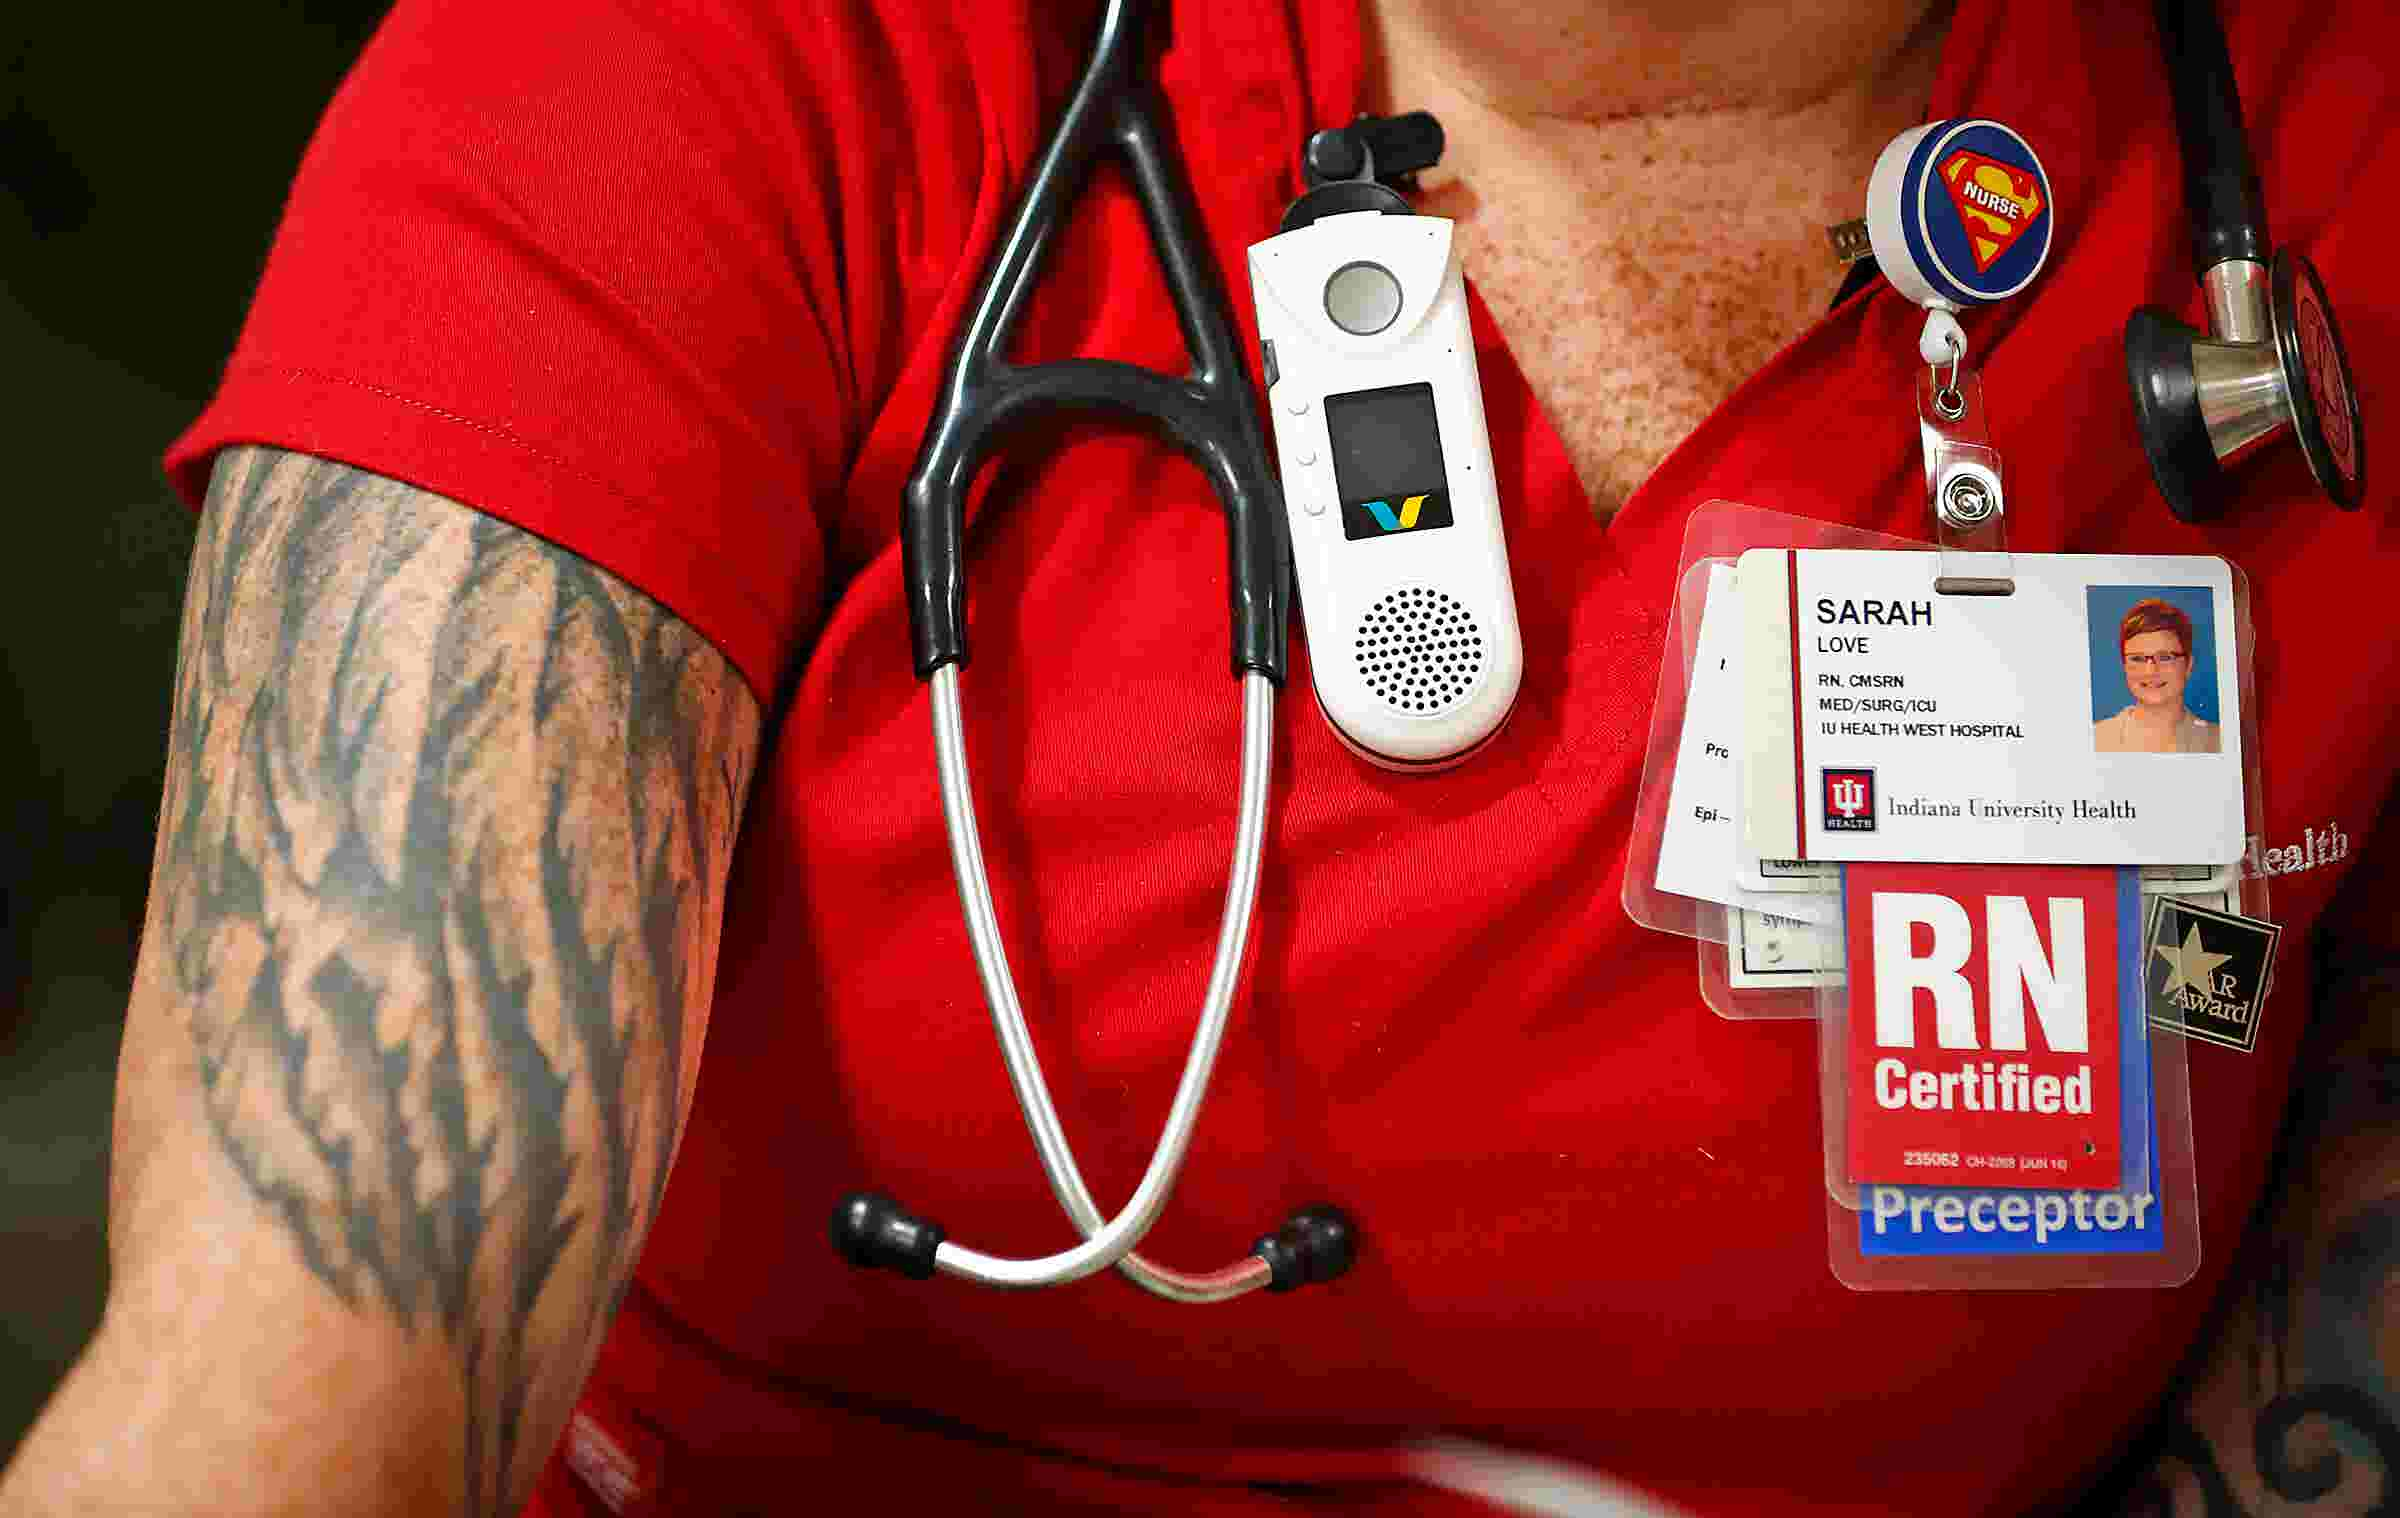 Tattoos In The Workplace Largest Indiana Health System Relaxes Policy